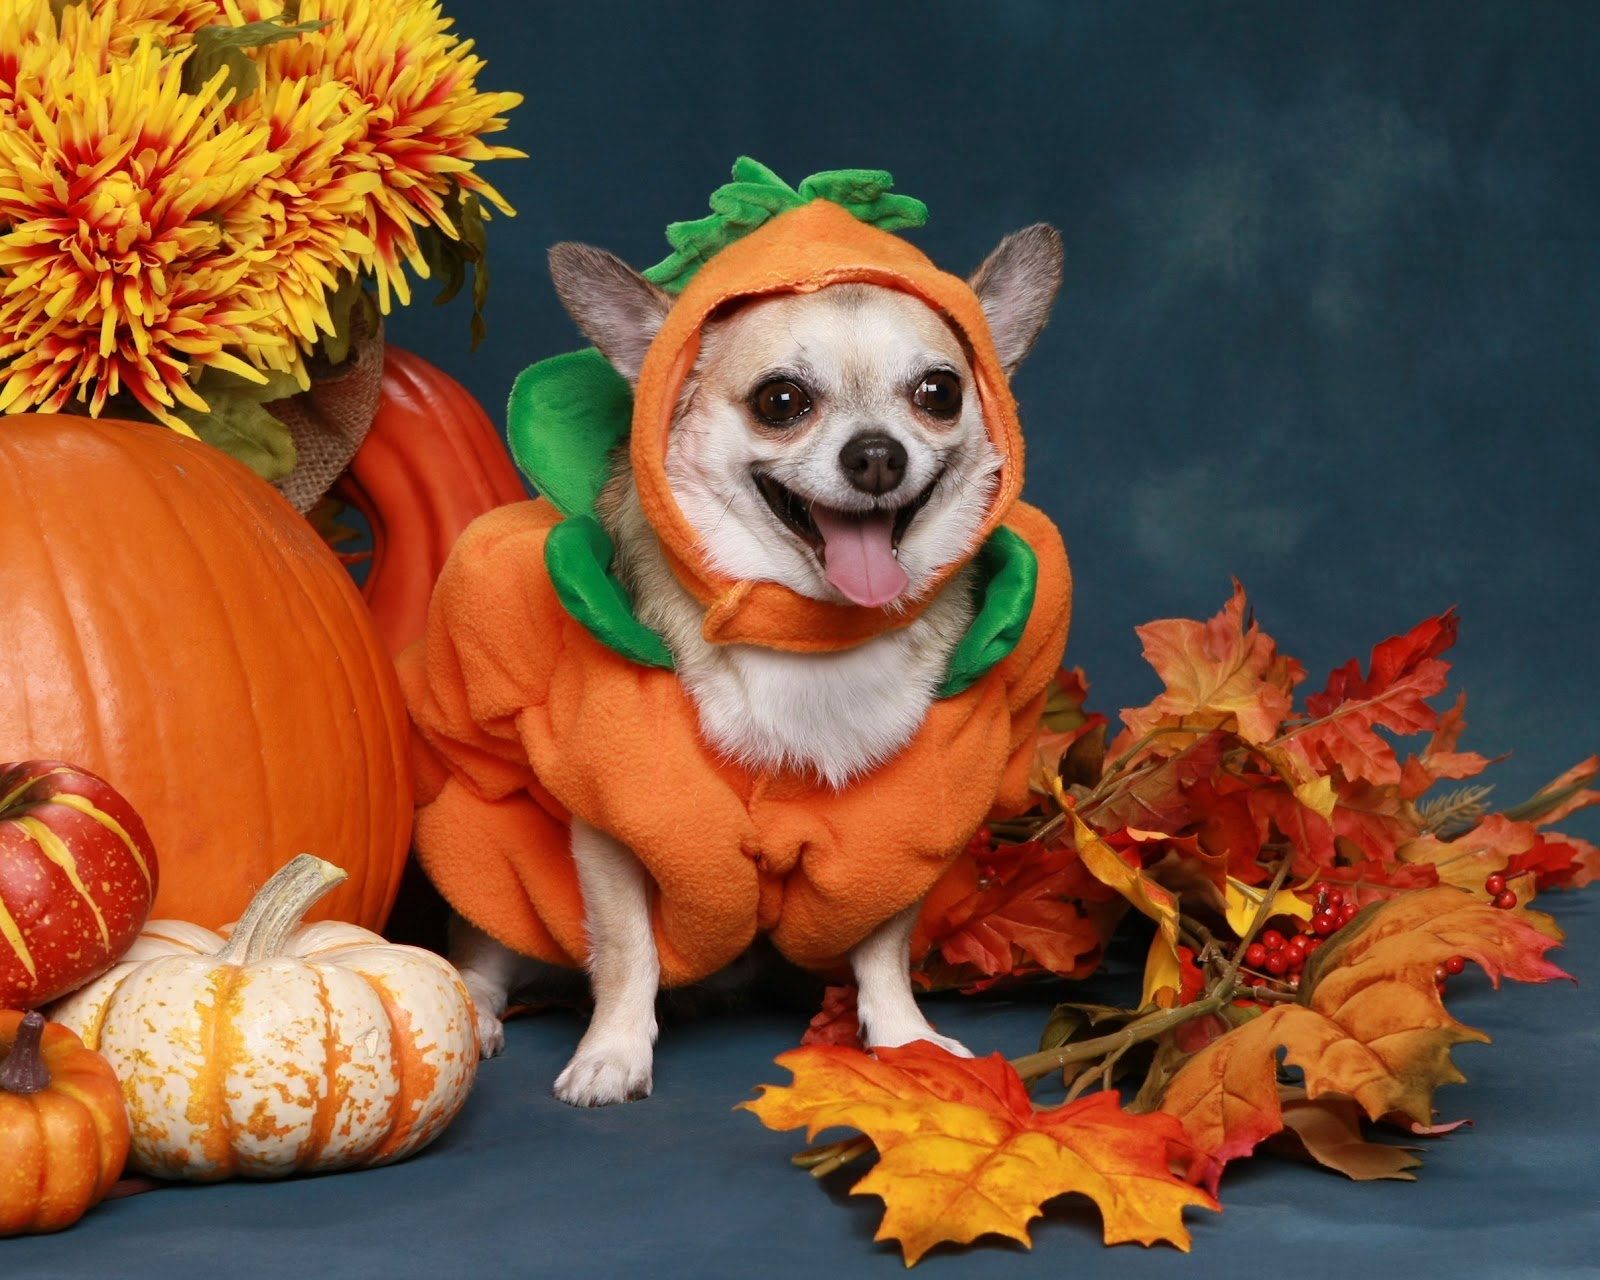 A pumpkin and a dog in a pumpkin costume